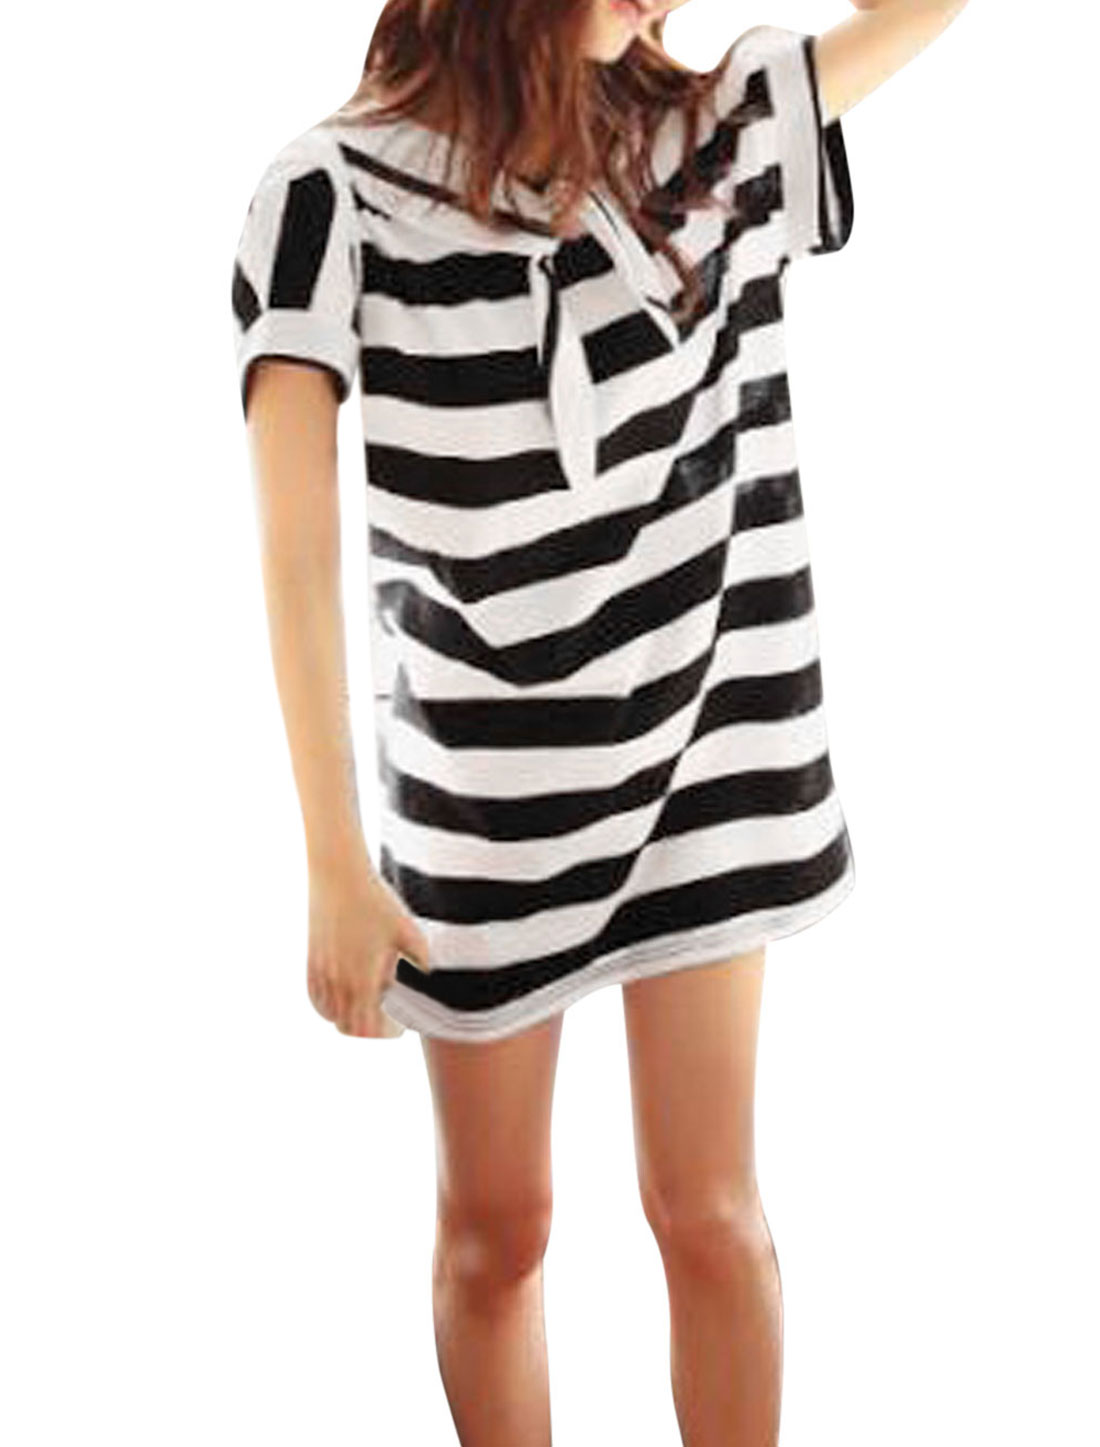 Lady Navy Collar Short Dolman Sleeve Striped T Shirt Dress Black White S